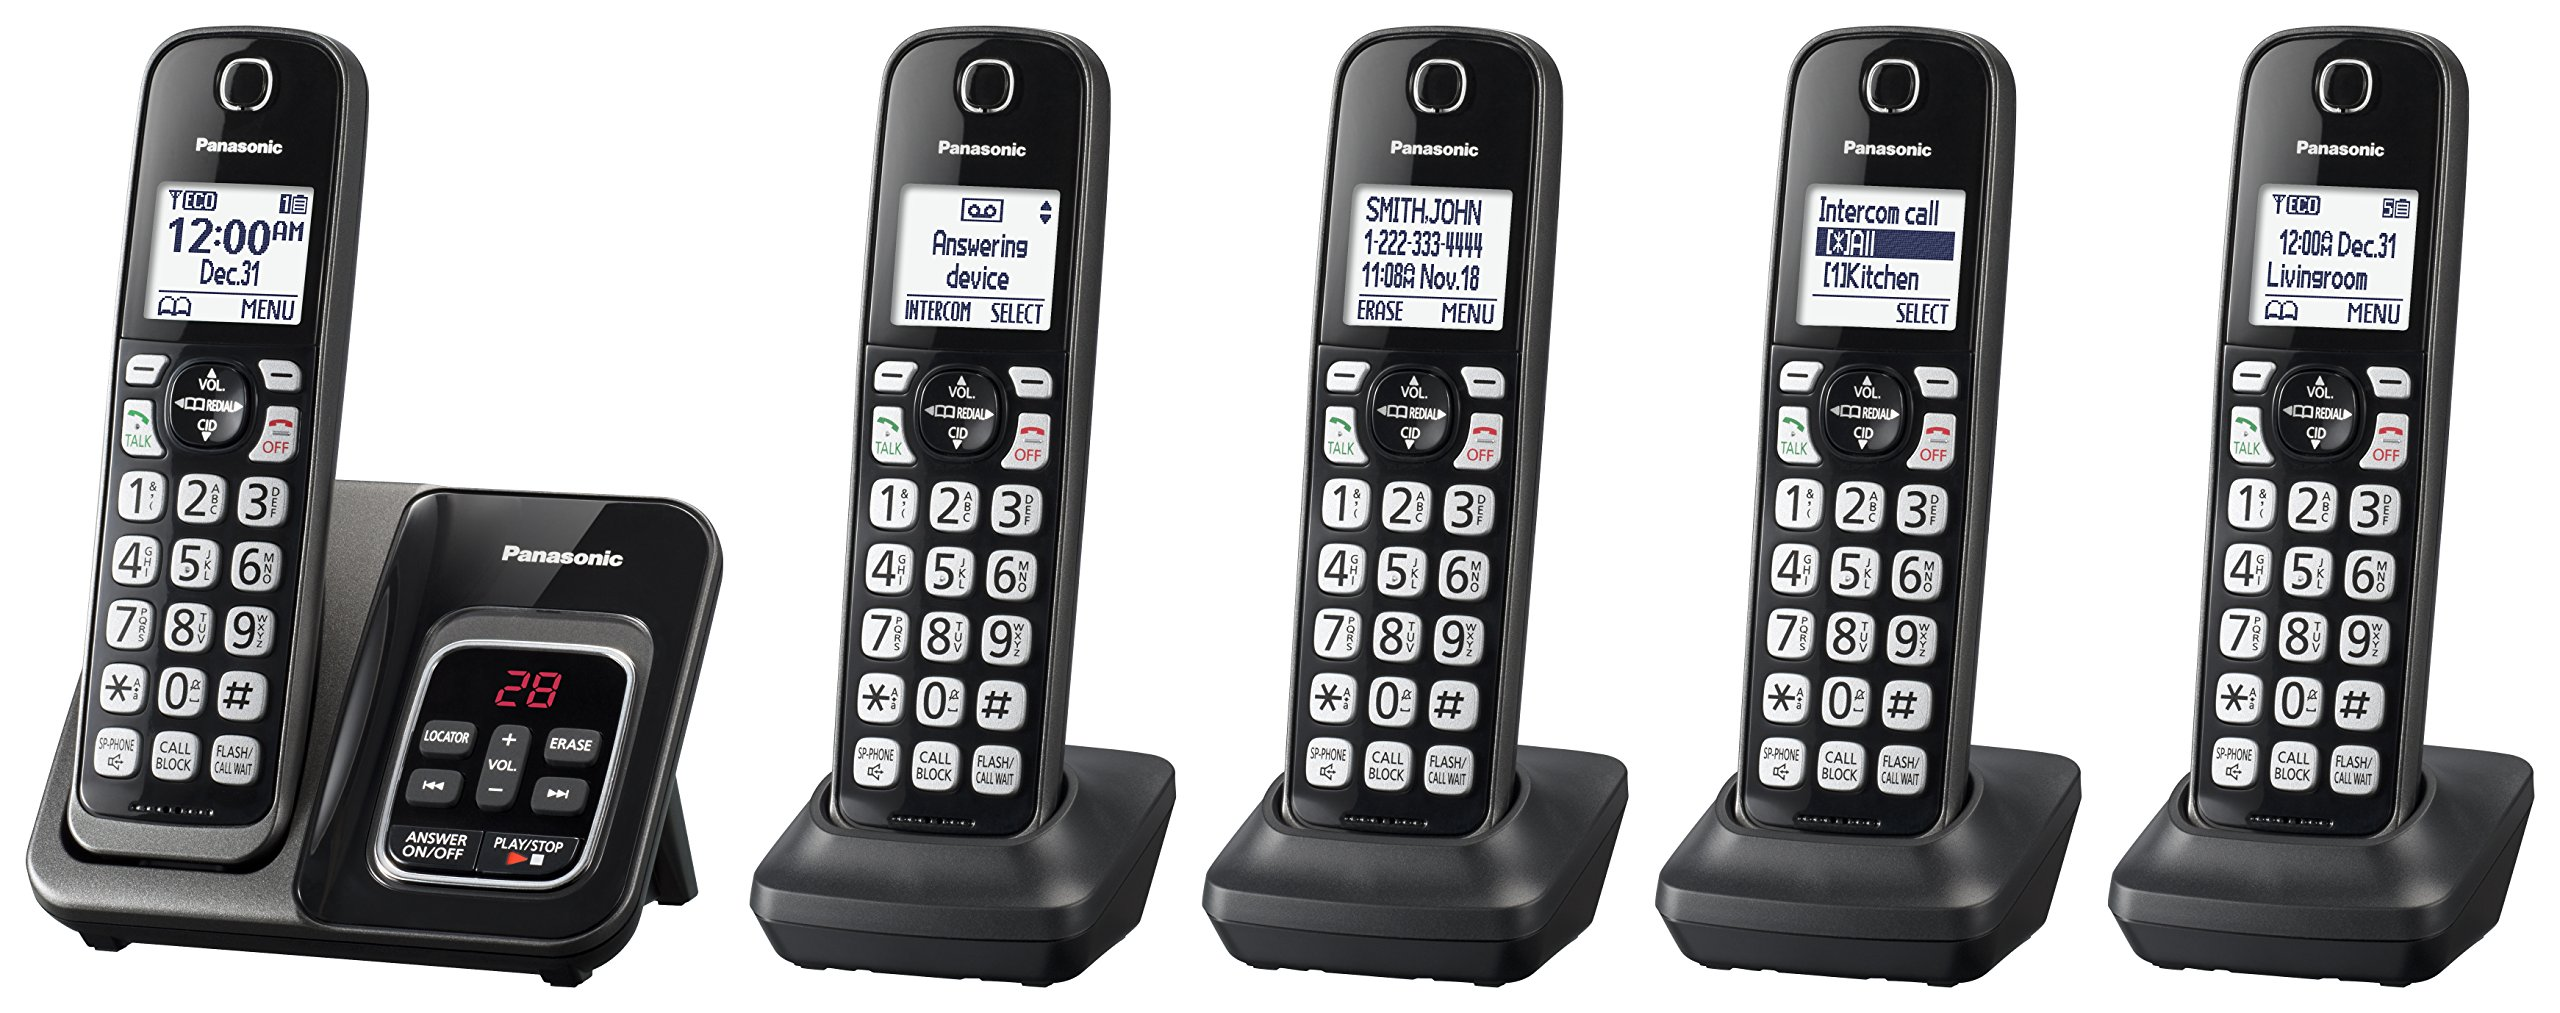 Panasonic KX-TGD535M Expandable Cordless Phone with Call Block and Answering Machine - 5 Handsets